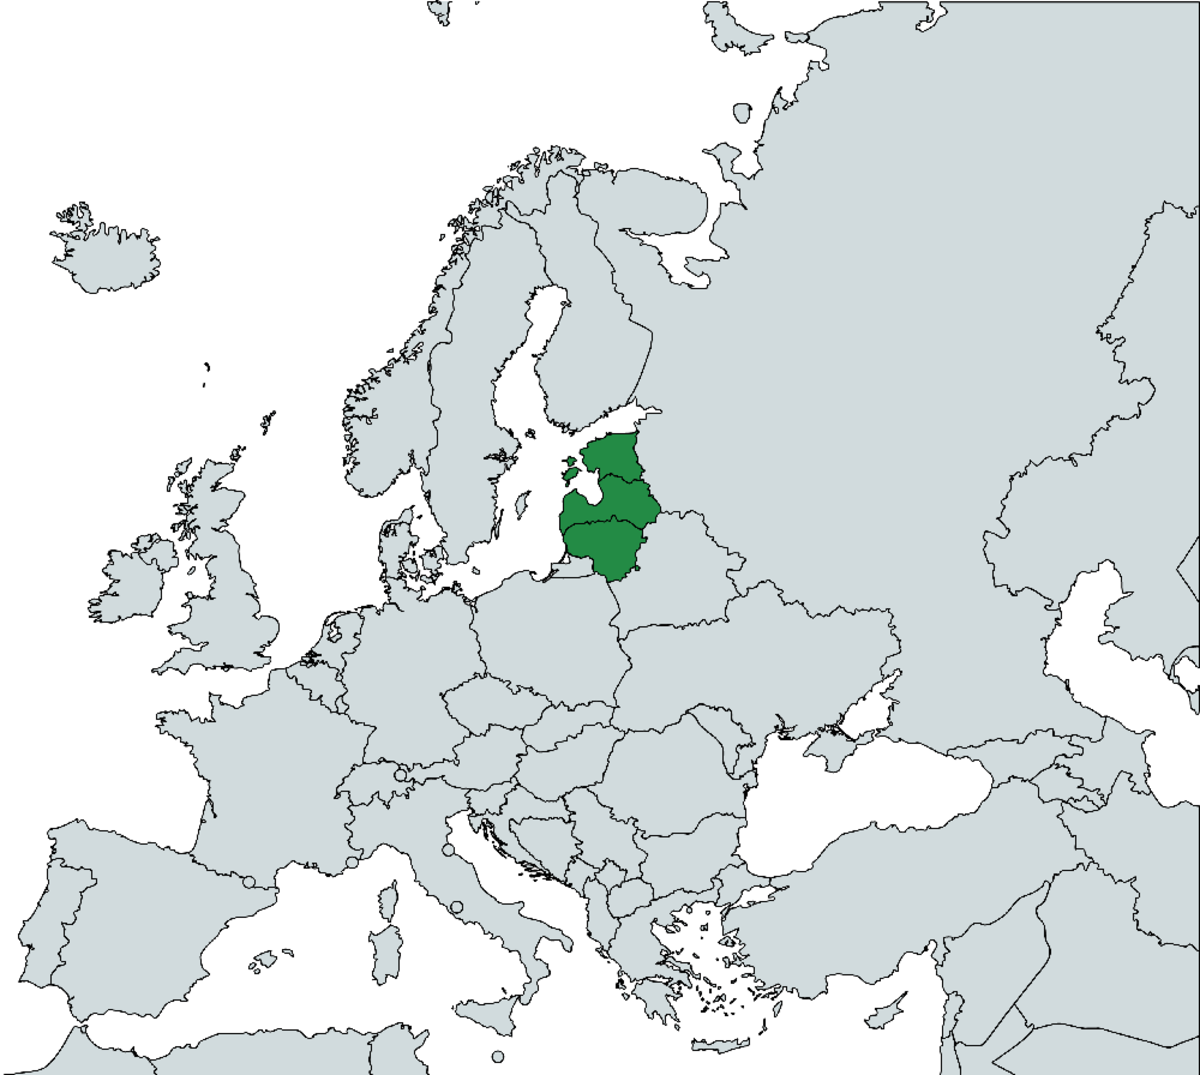 Map of Europe with the Baltic states marked green